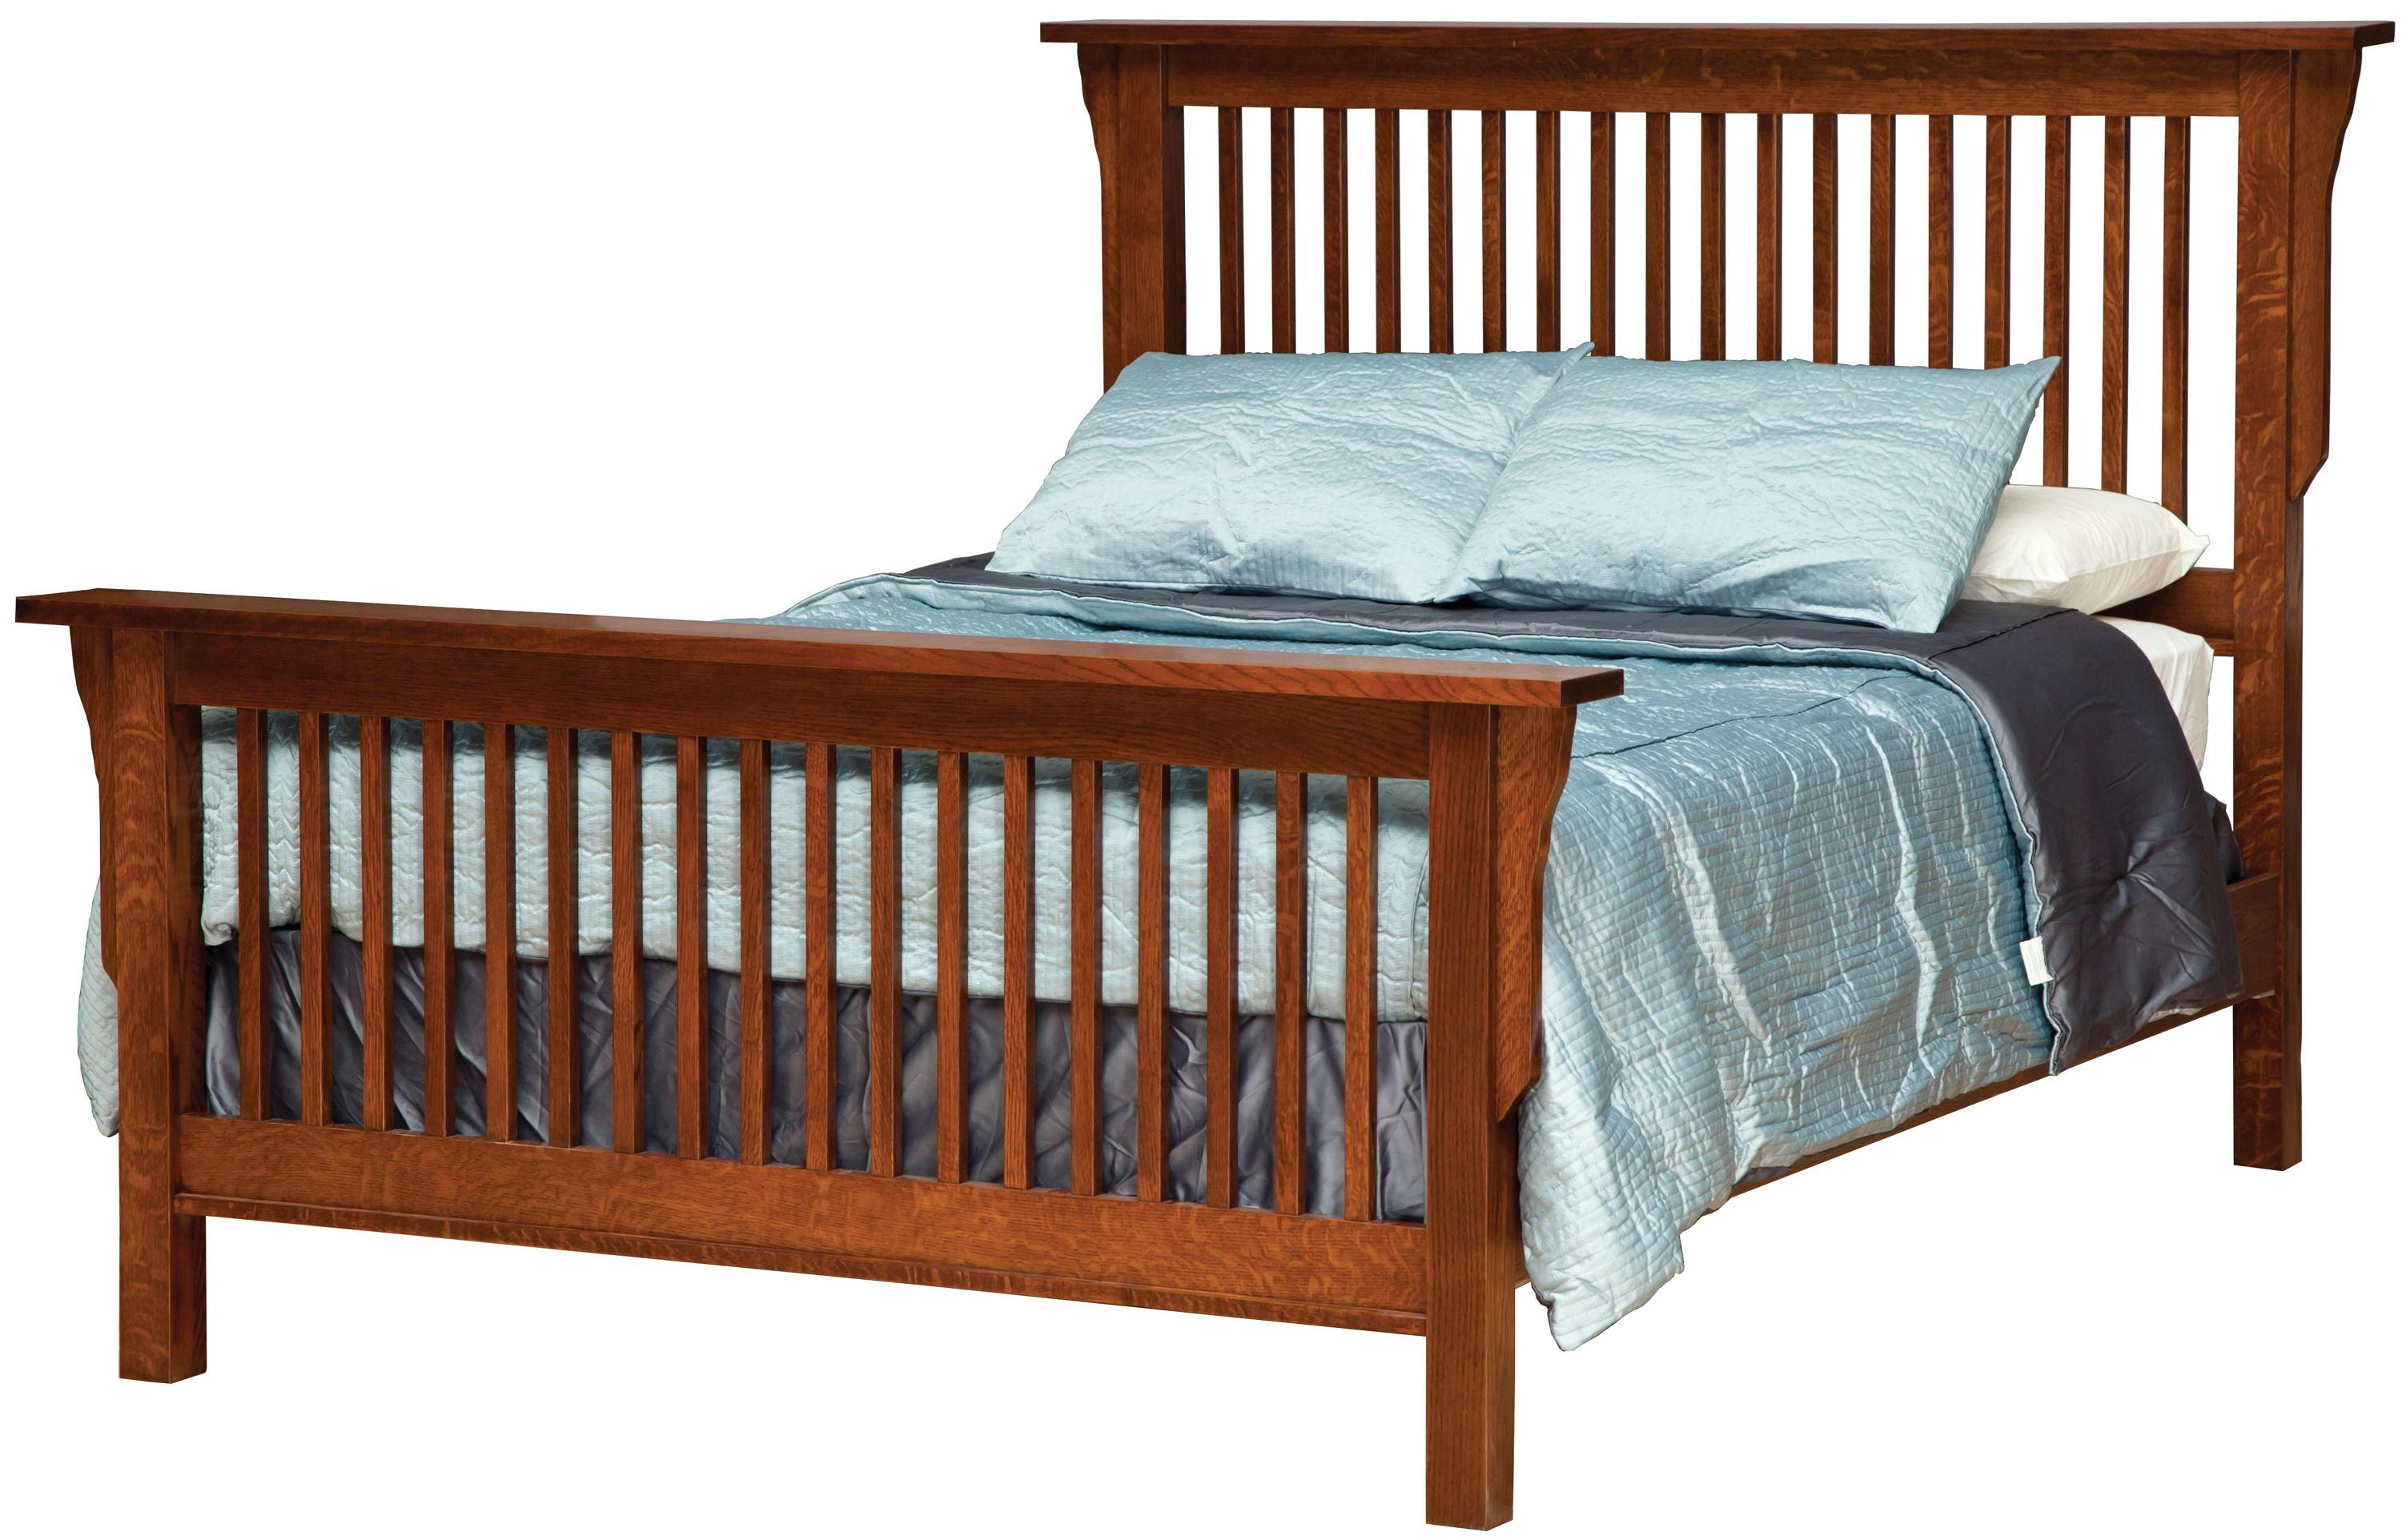 Frames Bed Headboards Style Mission Wood And